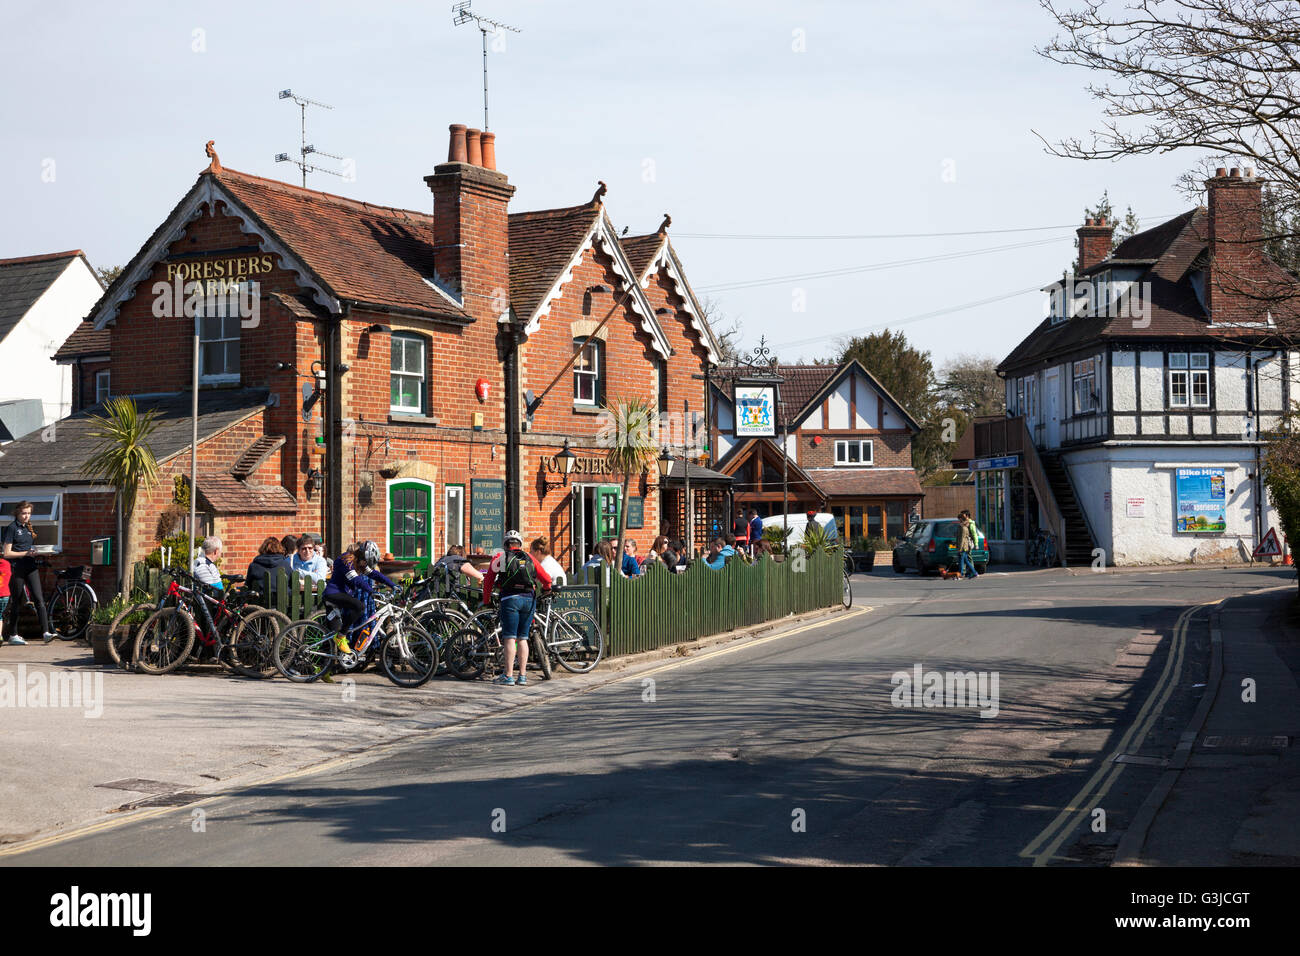 Victorian pub Foresters Arms in the centre of Brockenhurst, New Forest, UK - Stock Image